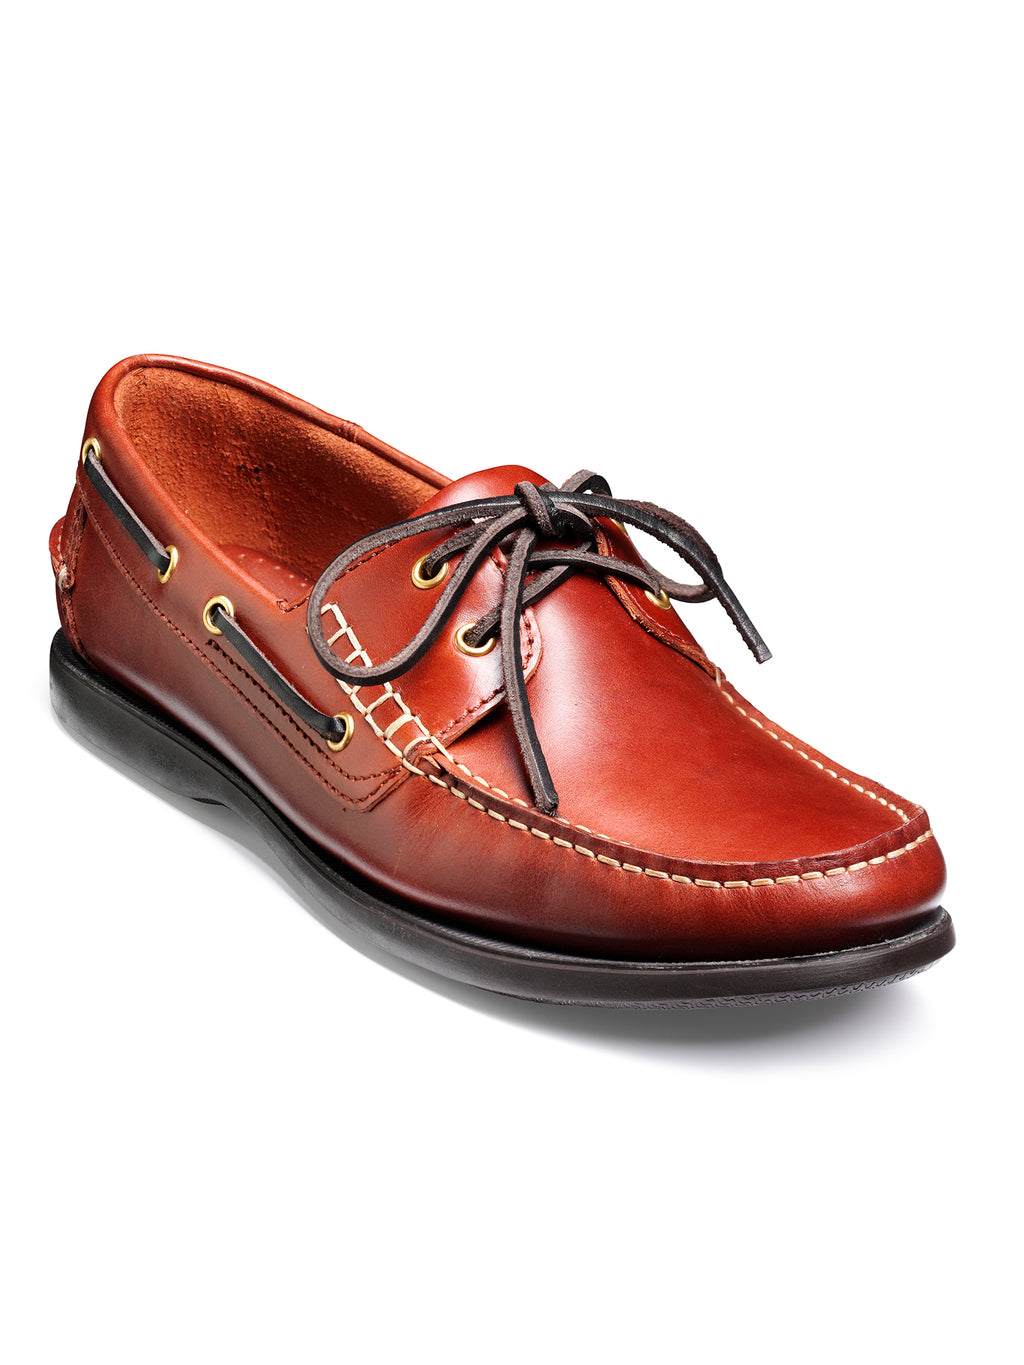 barker boat shoes